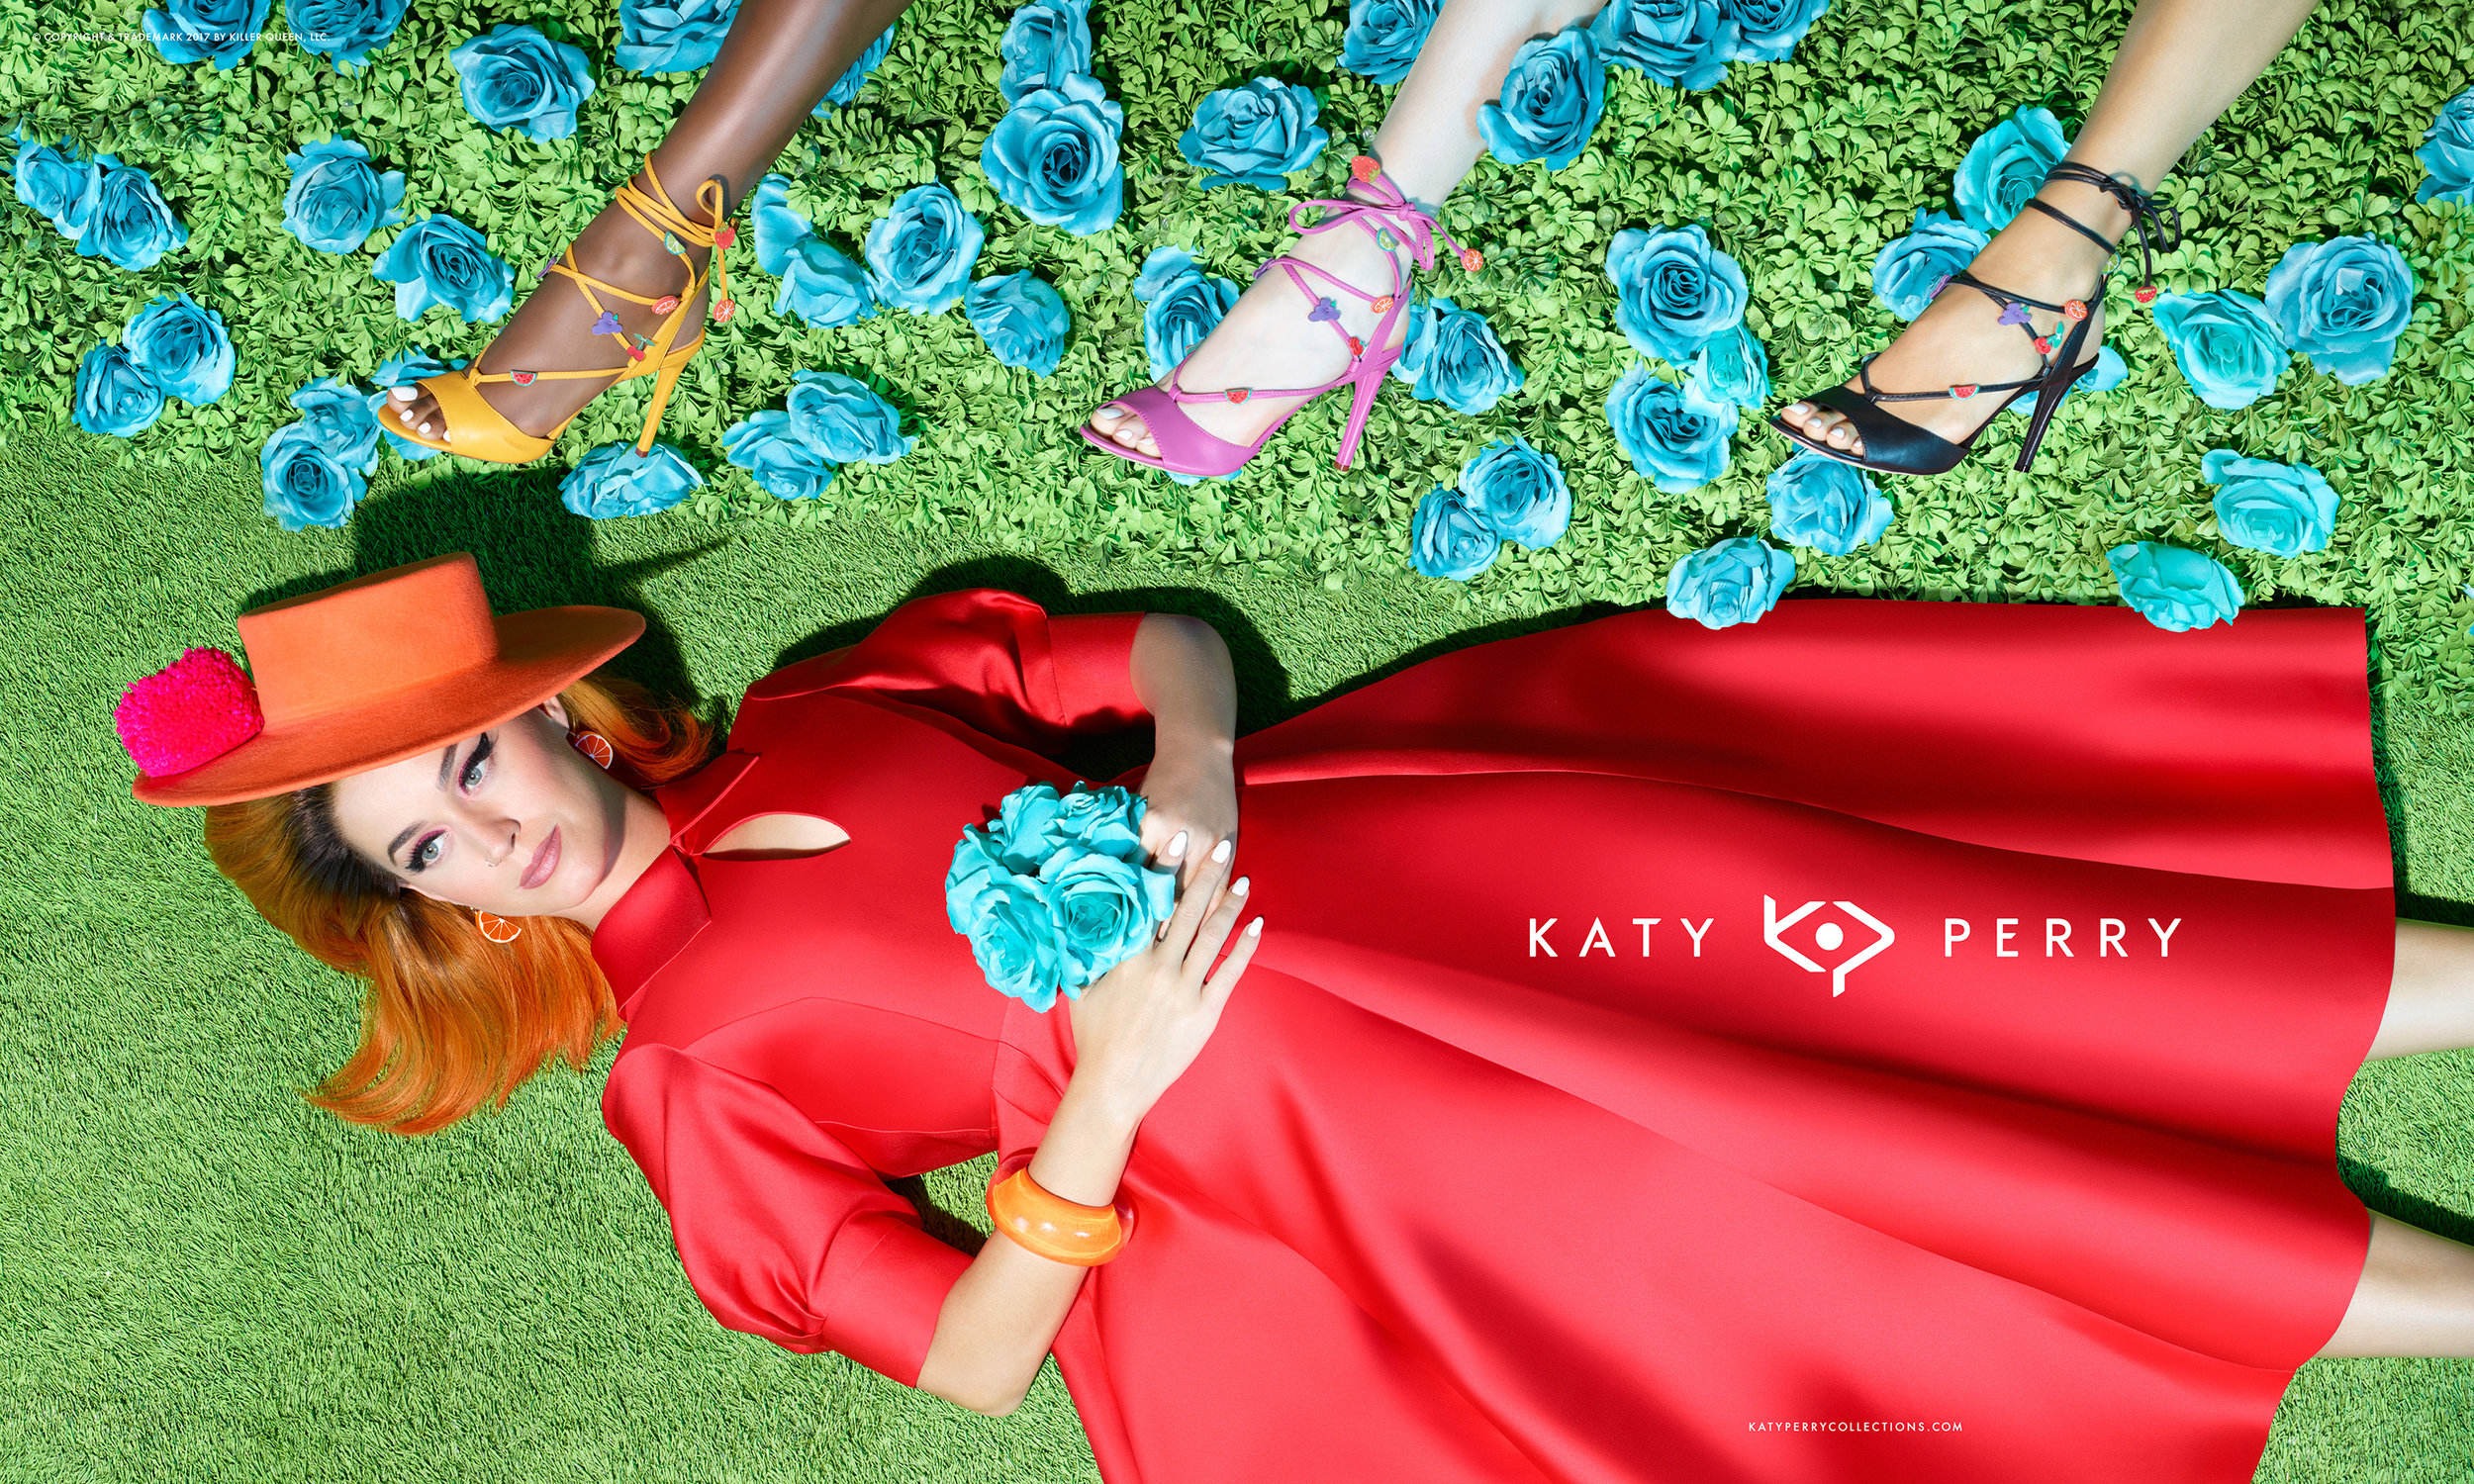 a0f97fd6e248 Katy Perry Collections - Launch — ADRIENNE ANGELO